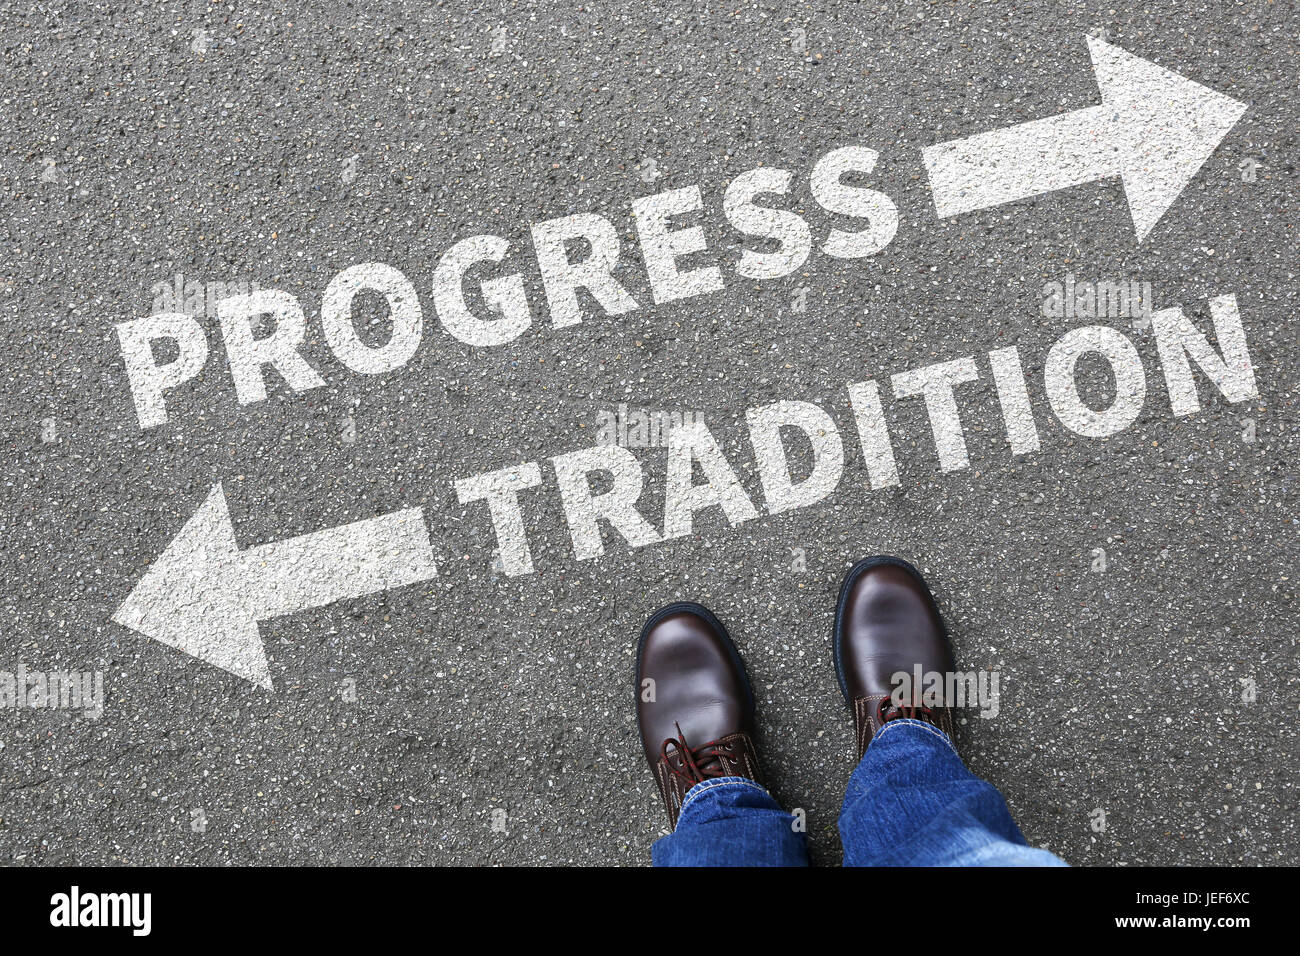 Tradition progress future management assessment analysis company business concept reward - Stock Image